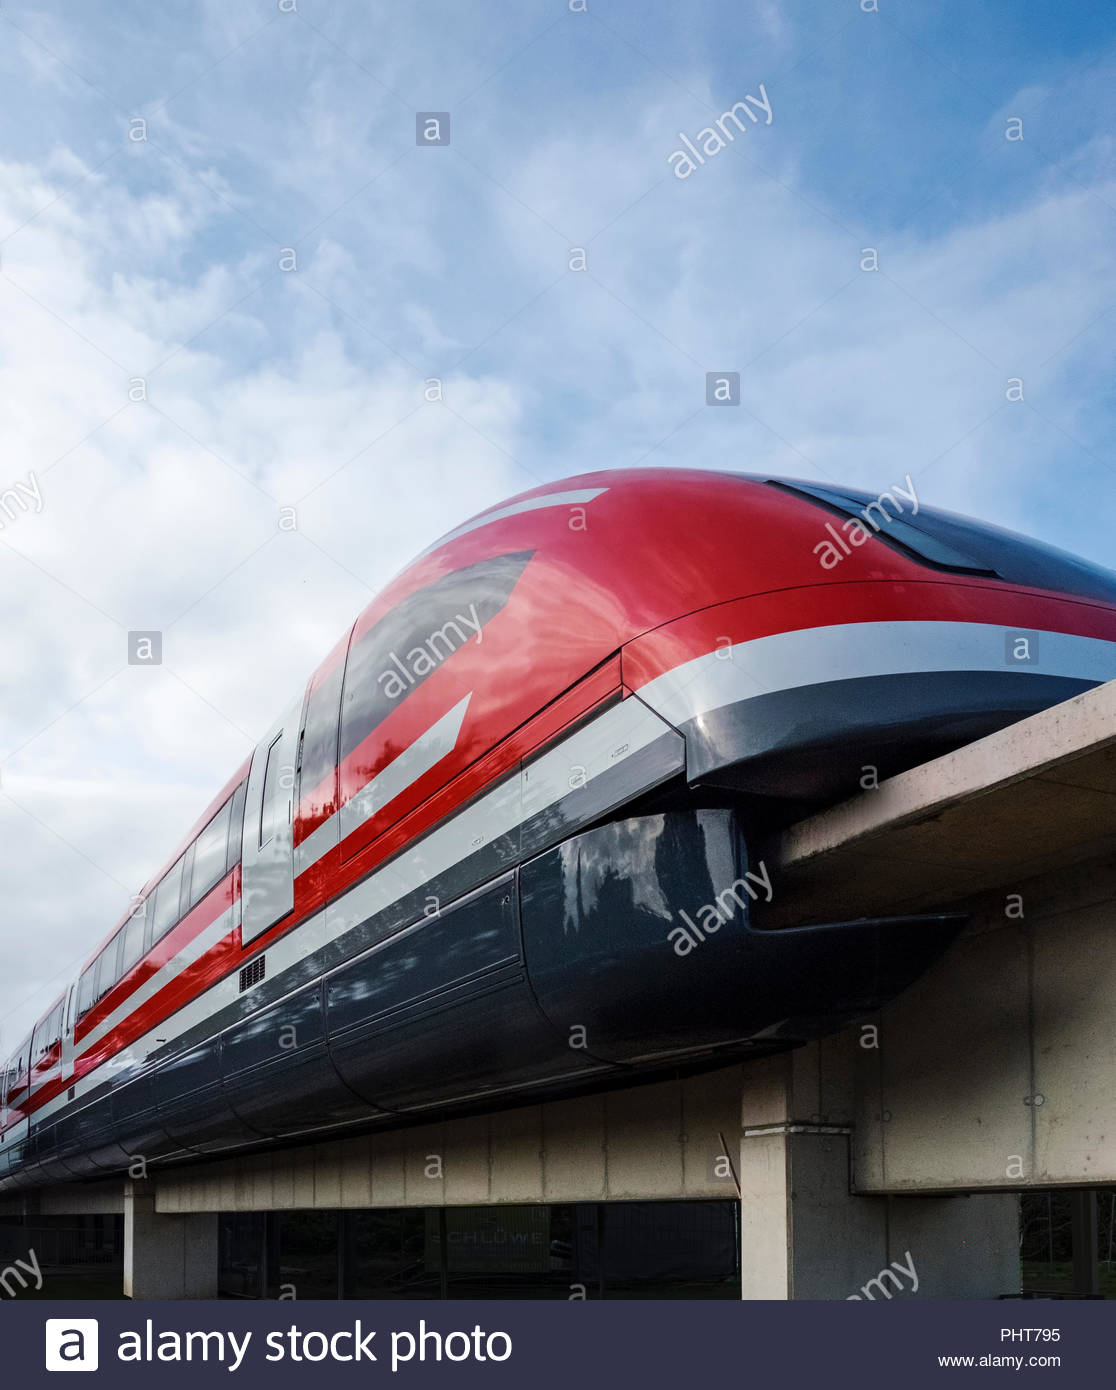 Transrapid TR09 magnetic levitation train on display in Nortrup, Germany is used for special events. - Stock Image